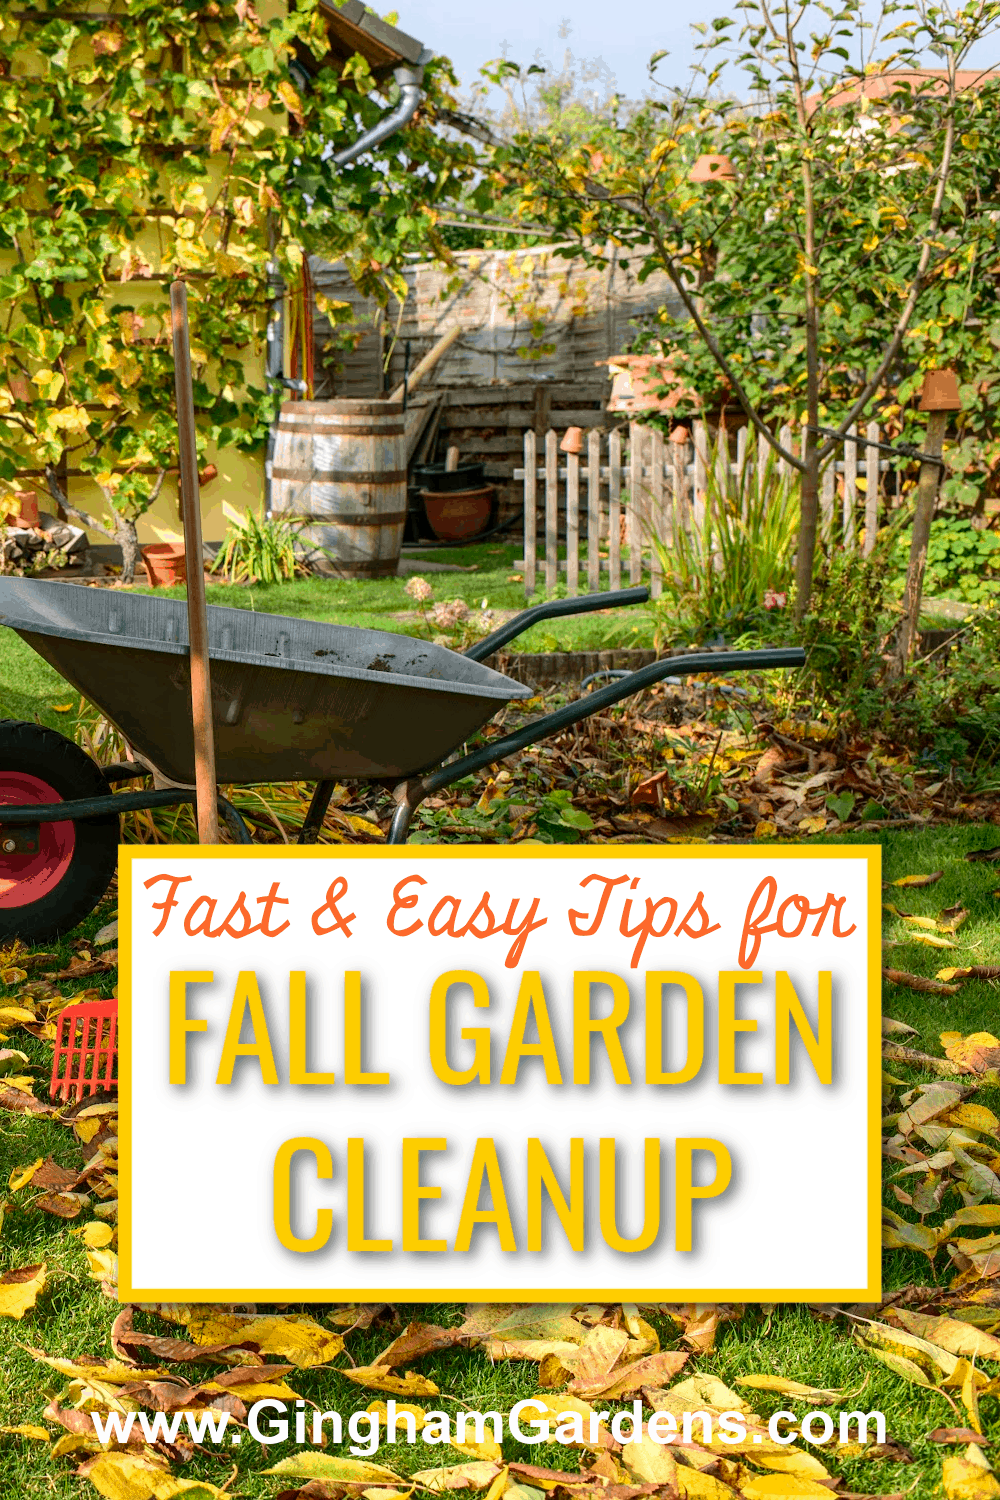 Image of a fall garden with text overlay - Fast & Easy Tips for Fall Garden Cleanup